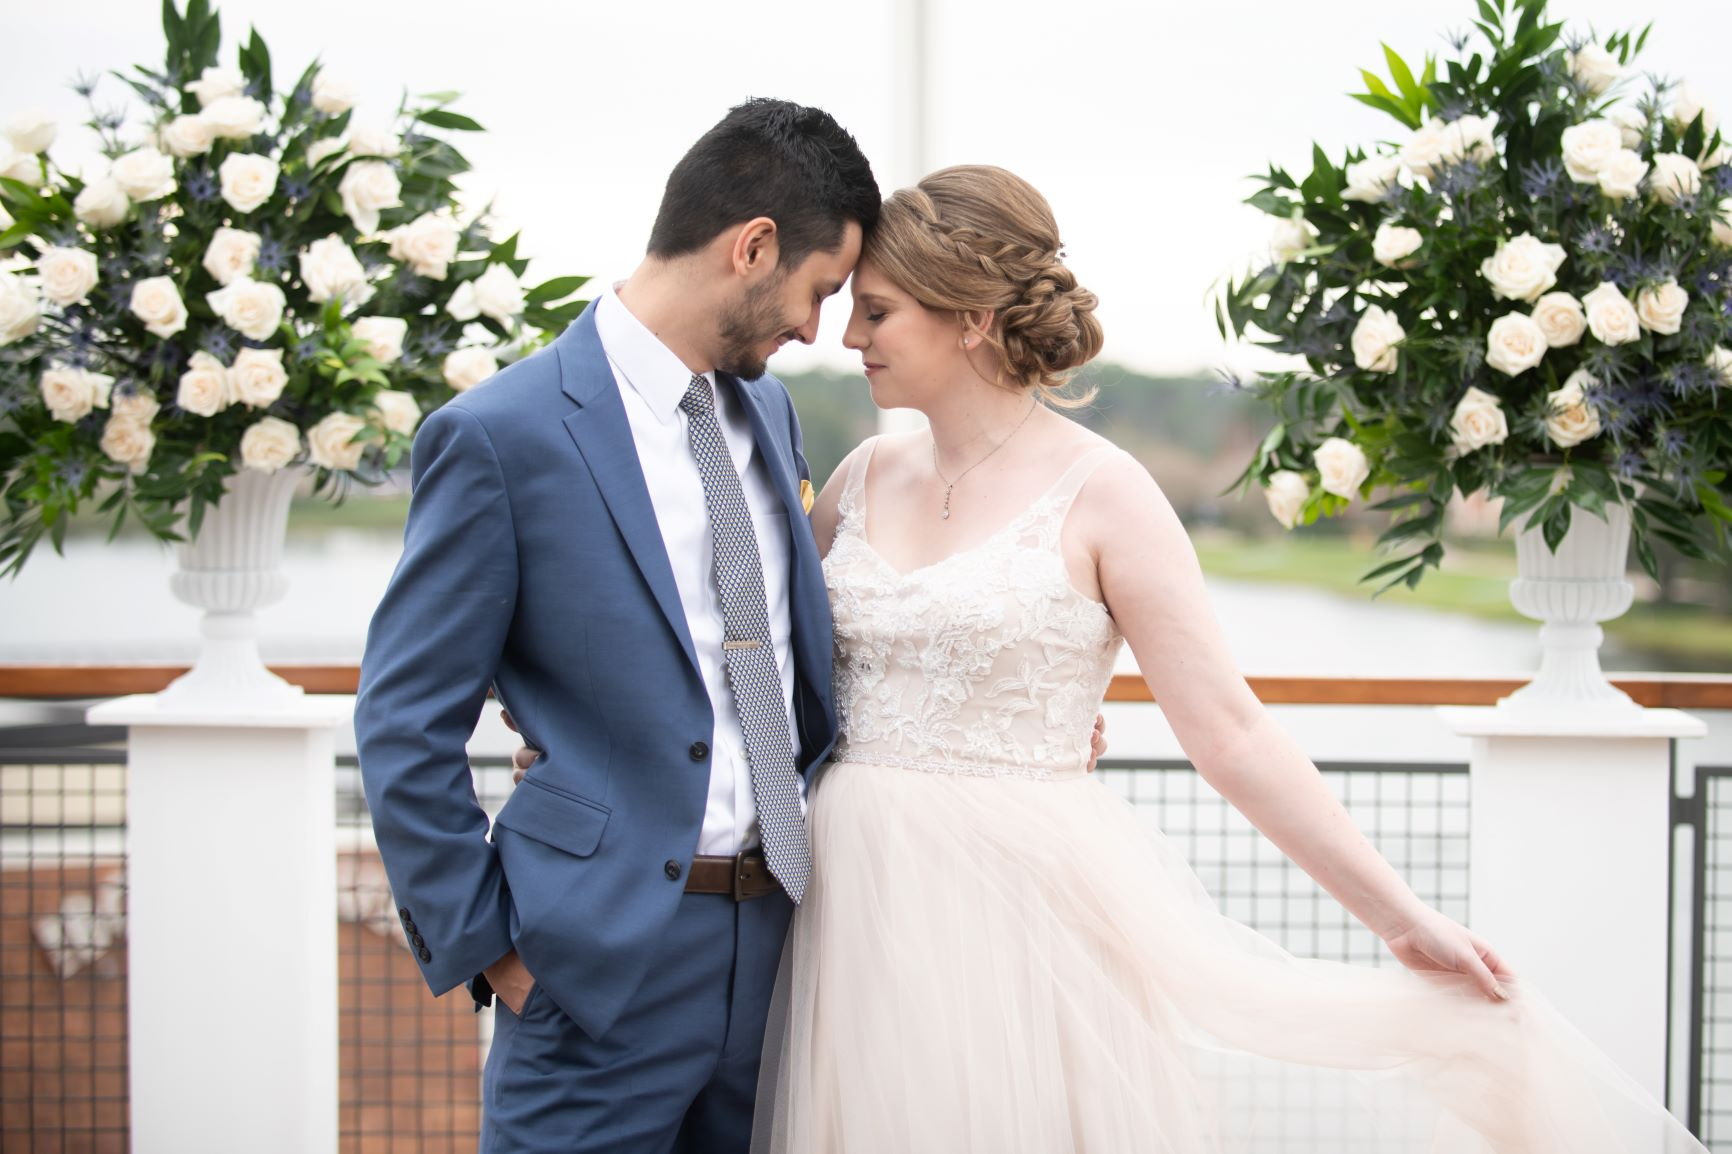 Nautical Wedding | Janna and Jonathan at Paddlefish Disney Springs